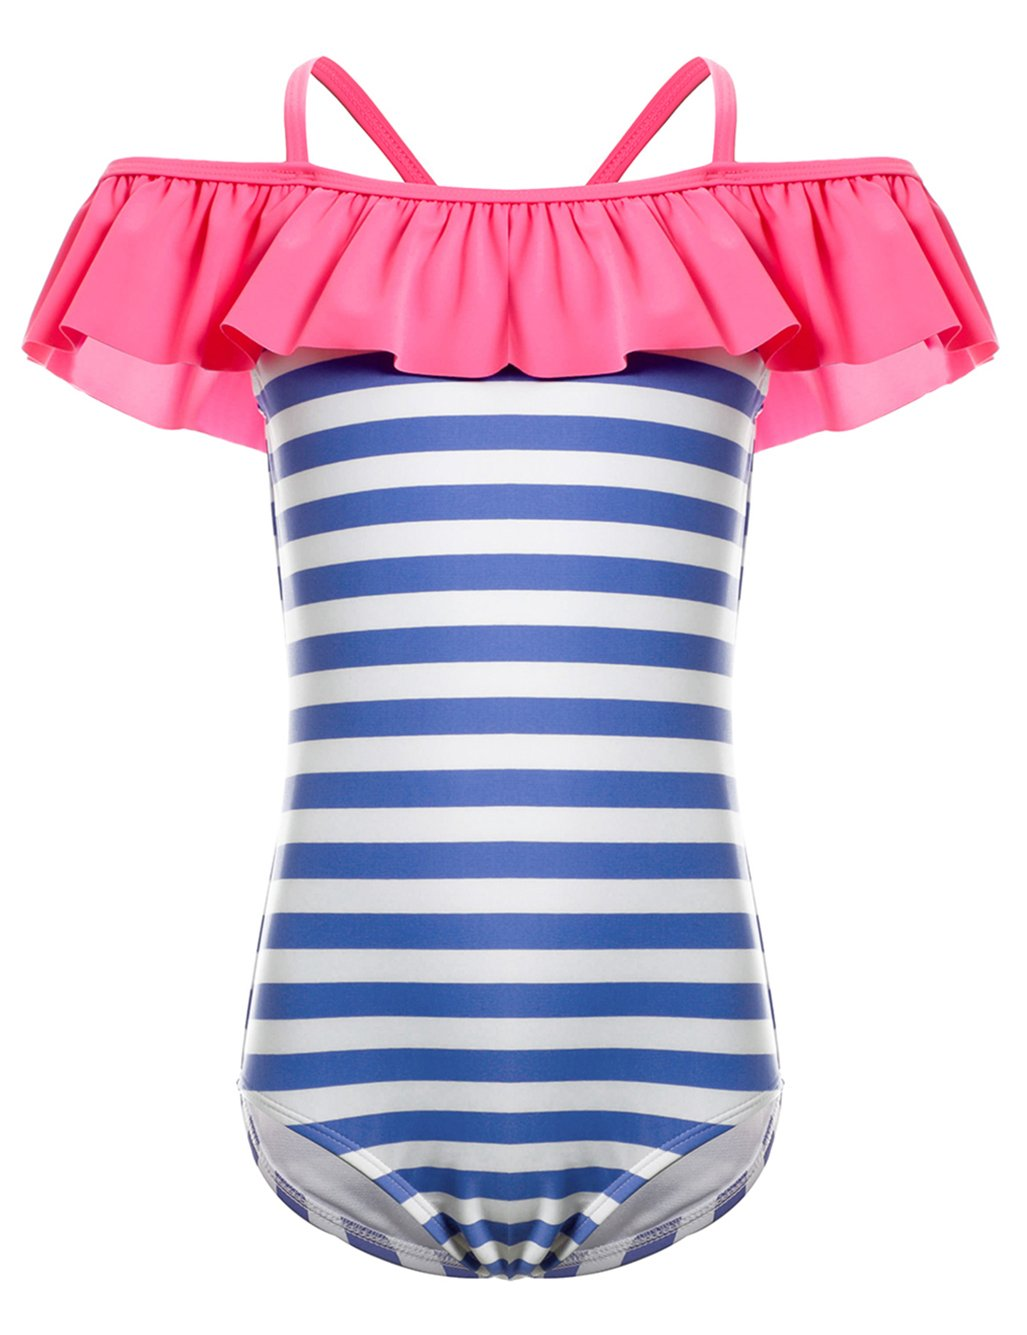 Swimwear Brand Baby Swimsuit Childrens Swimsuits For Boys Toddler Kids Swimwear Striped One Pieces Beach Wear Swimming Suit Bathing Suit Neither Too Hard Nor Too Soft Boys' Baby Clothing